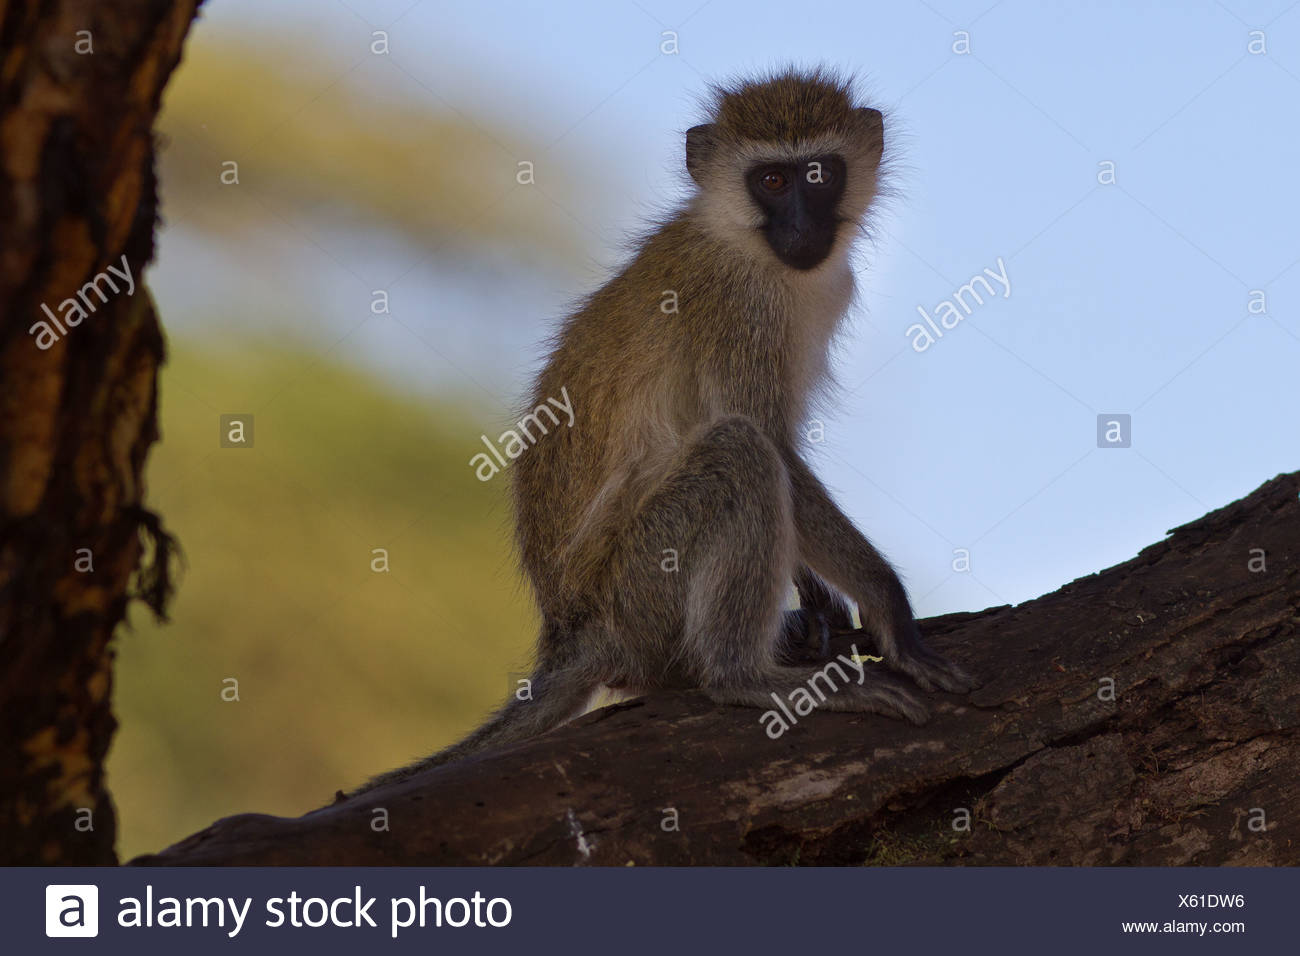 Close up of vervet monkey sitting on branch of tree, side view, Lewa Downs, Kenya, East Africa - Stock Photo